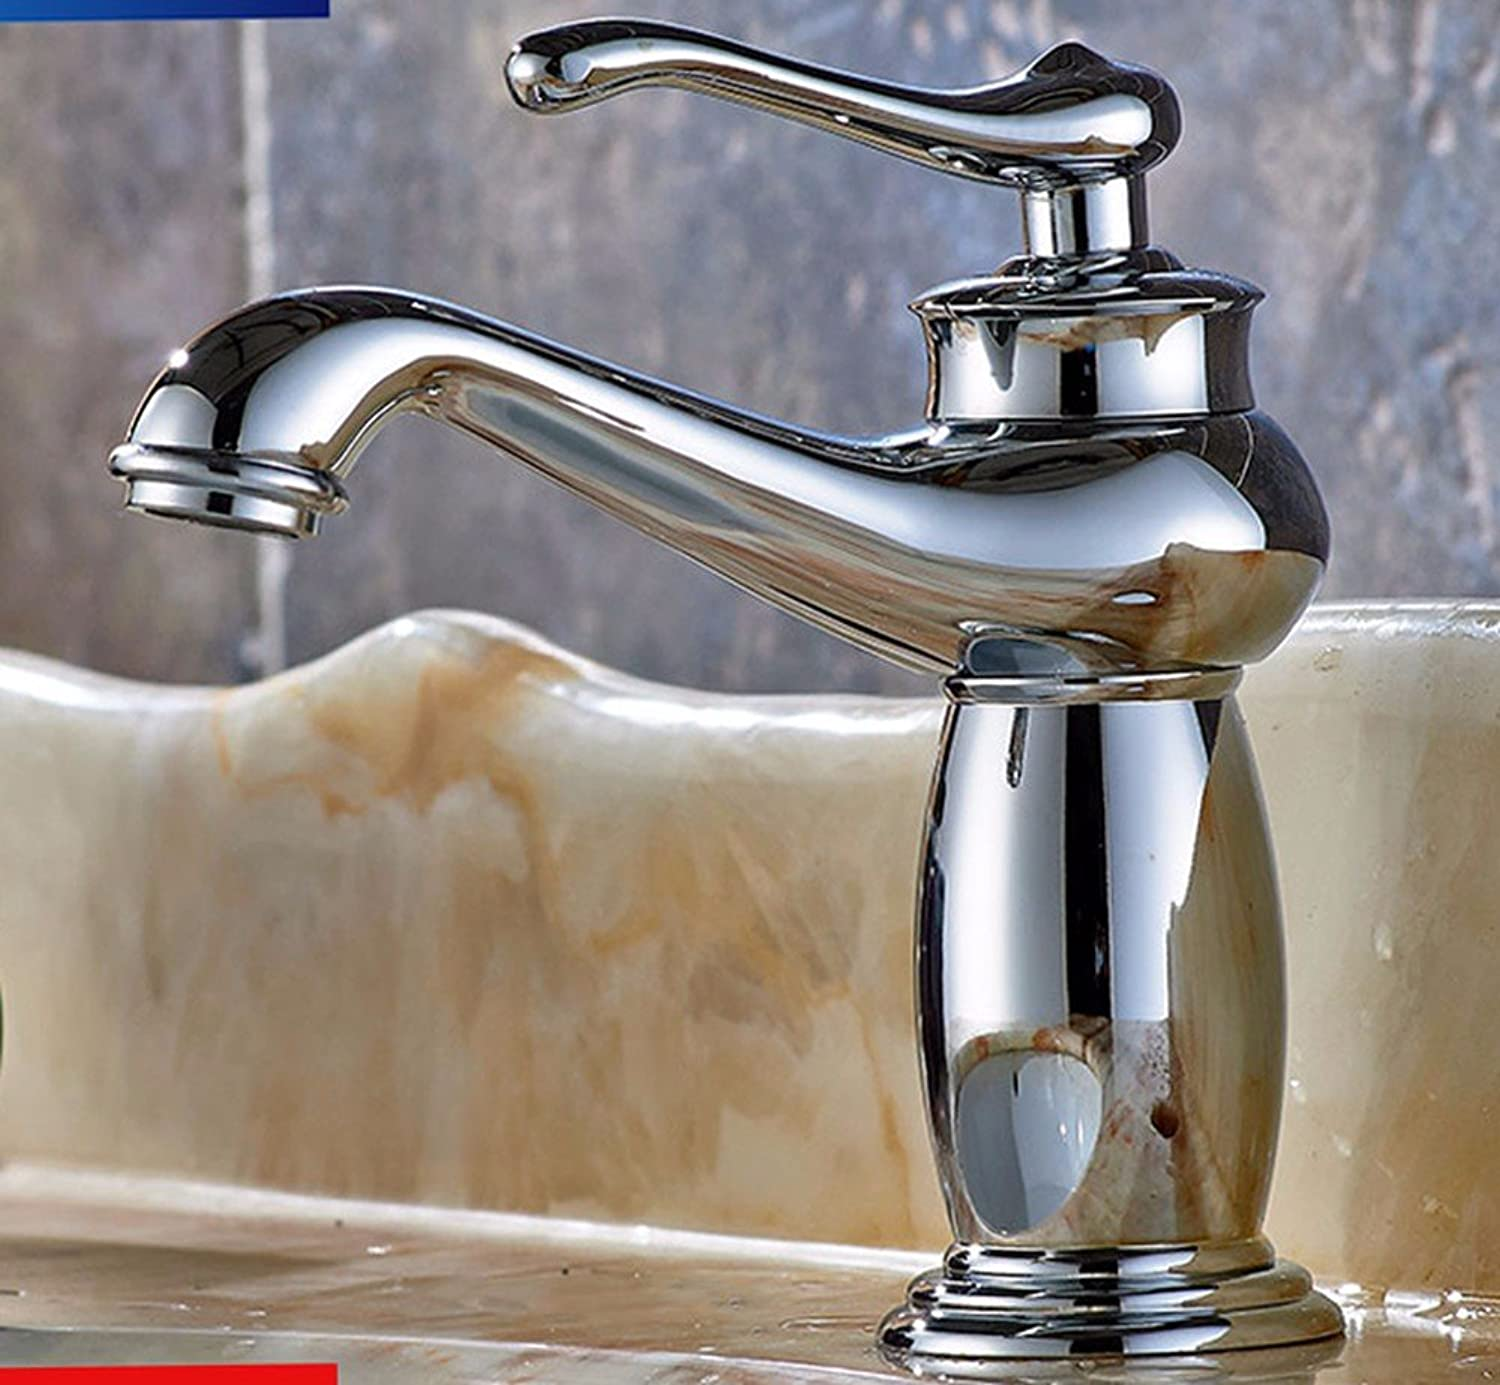 Hlluya Professional Sink Mixer Tap Kitchen Faucet Copper, hot and cold, bathroom, vanity area with a sink and faucet